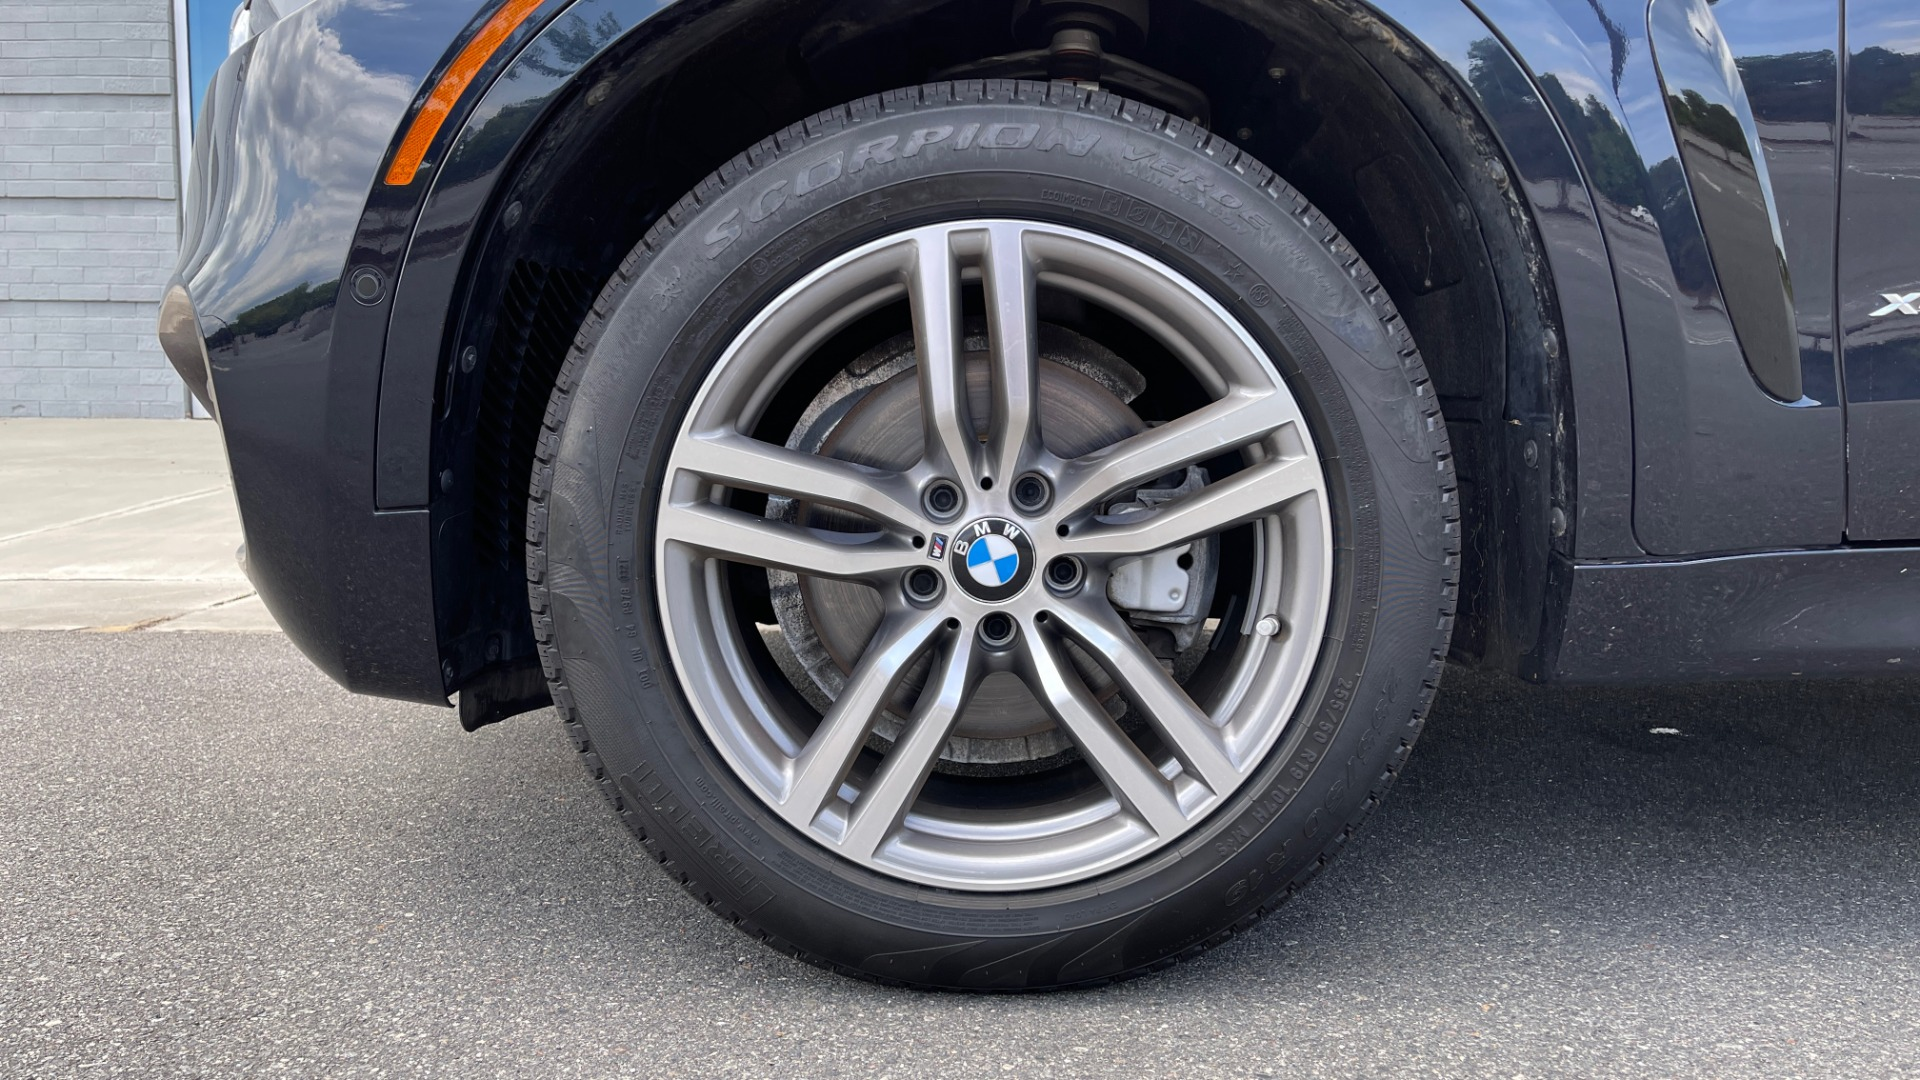 Used 2018 BMW X6 XDRIVE35I M-SPORT / DRVR ASST / PRK ASST / H/K SND / APPLE / WIRELESS CHARG for sale $51,995 at Formula Imports in Charlotte NC 28227 69